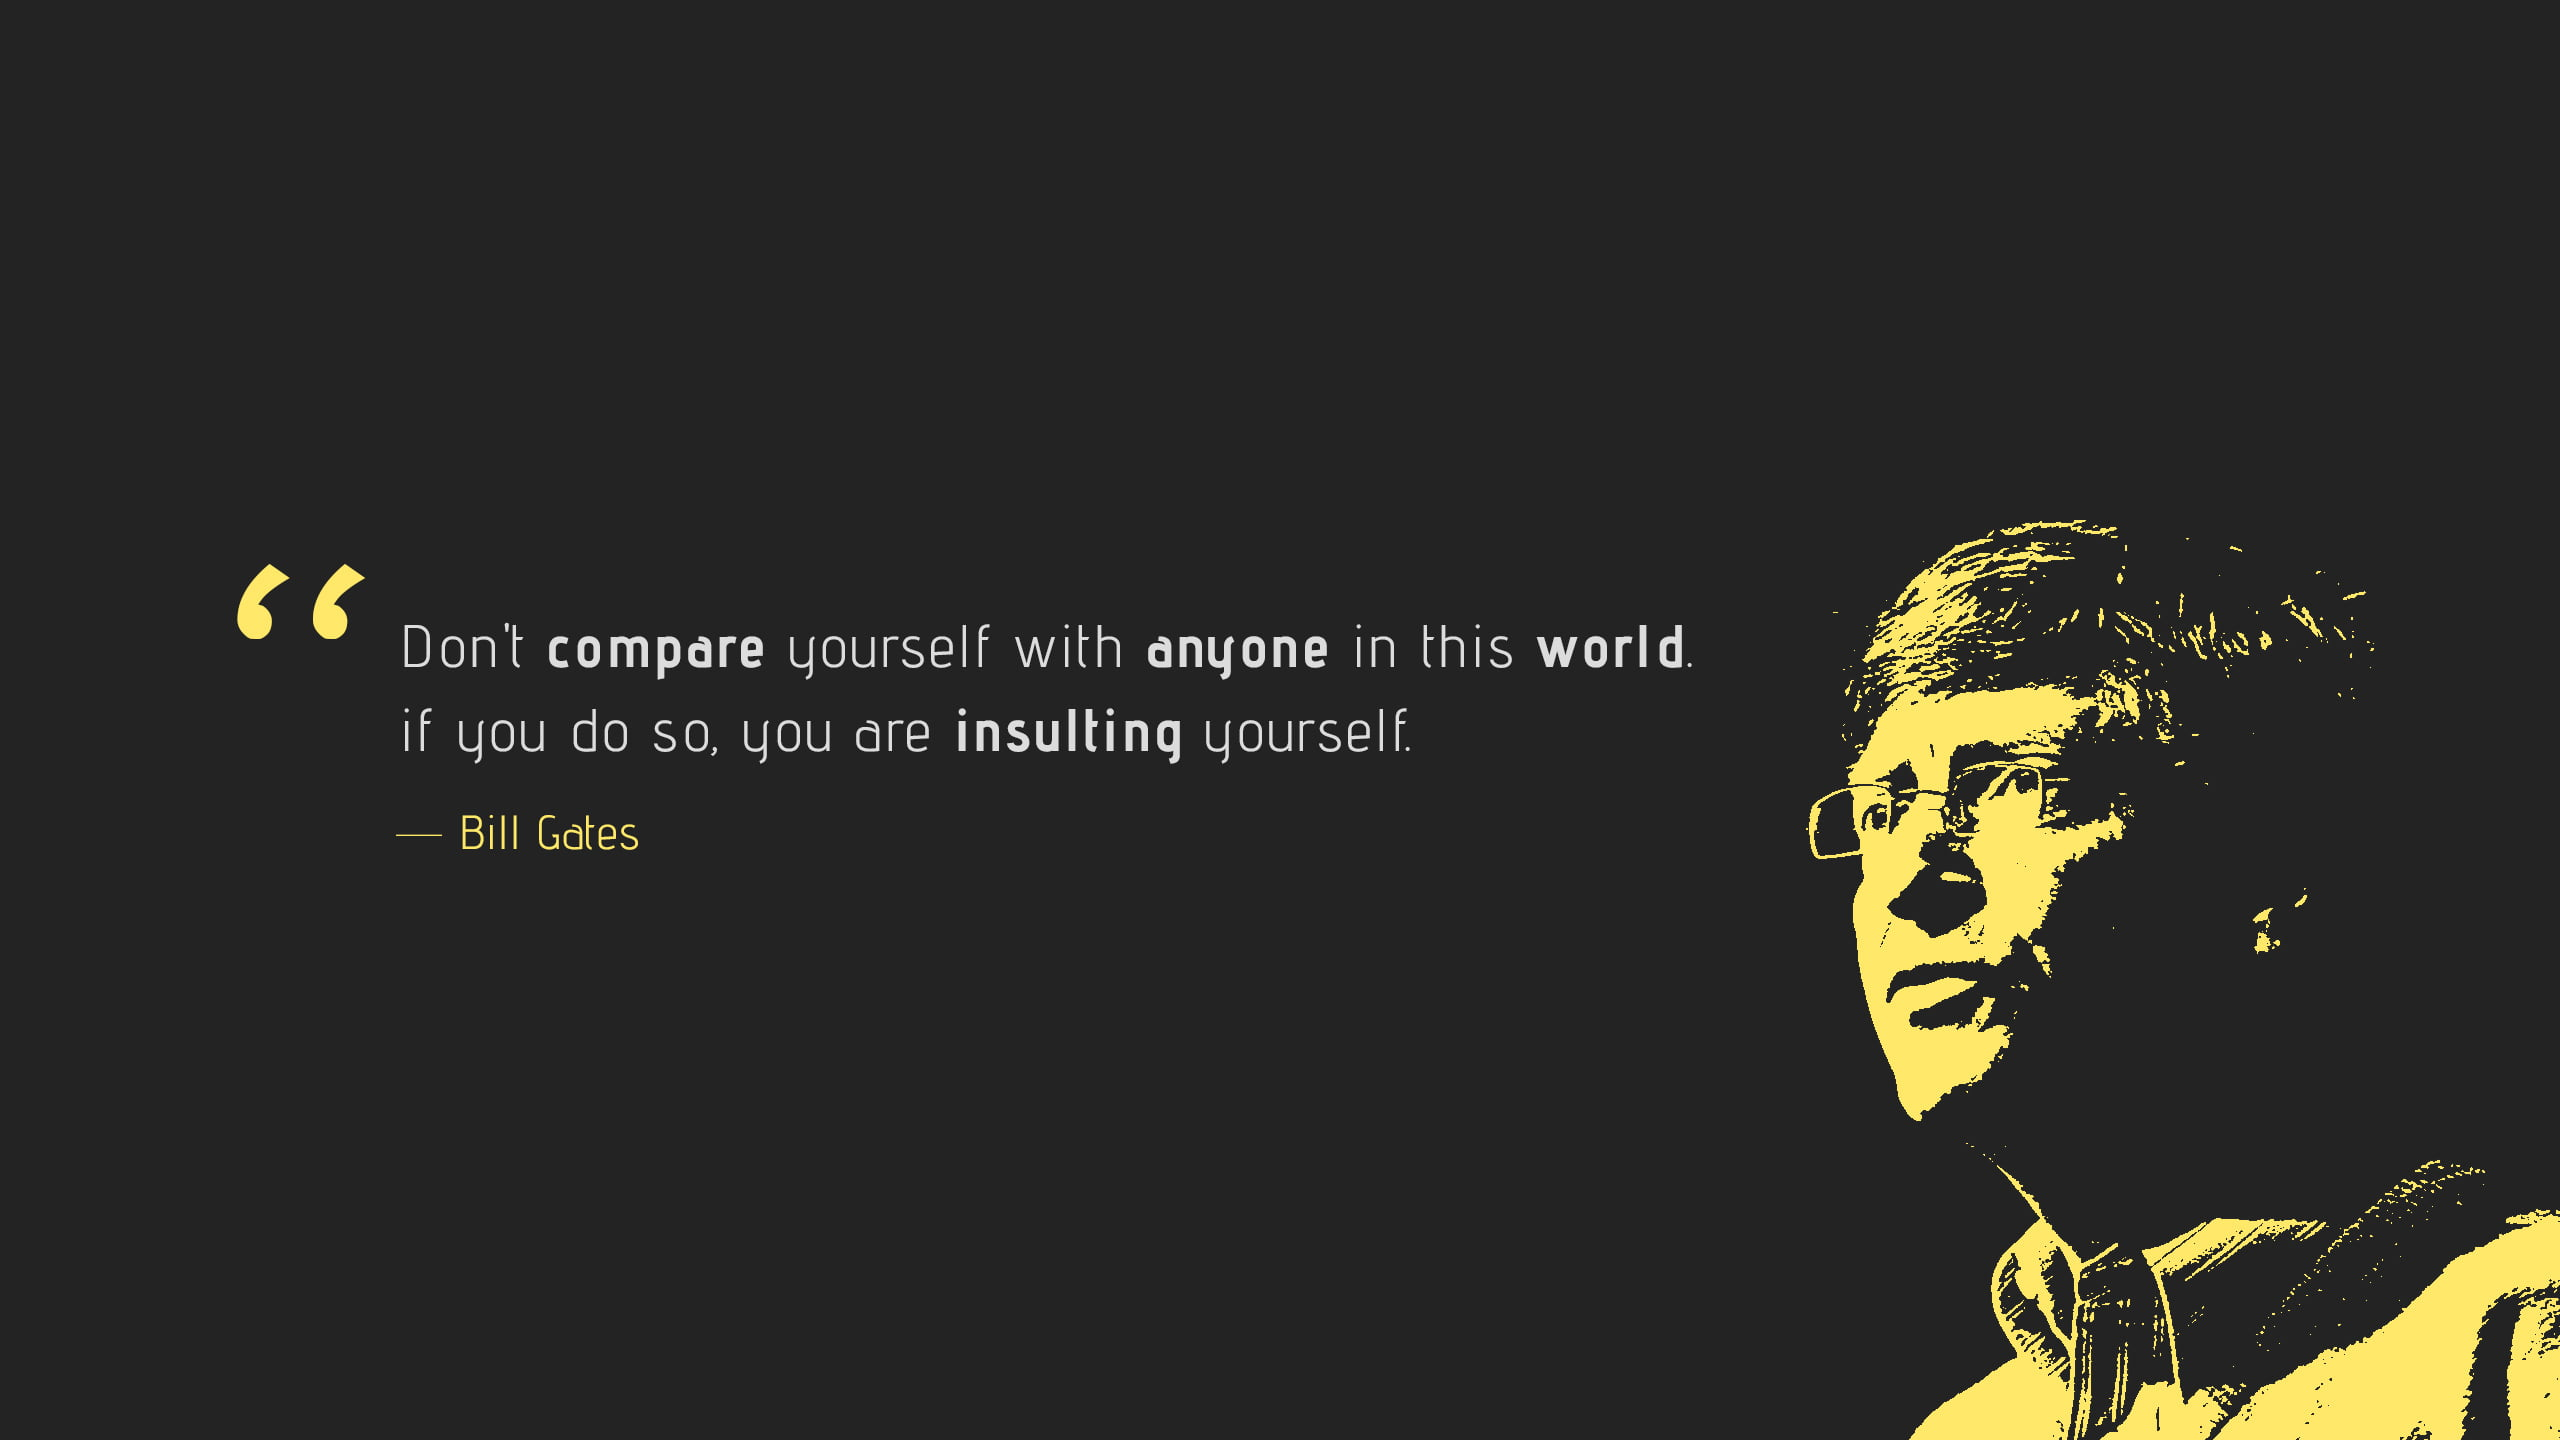 Bill Gates quote with black background